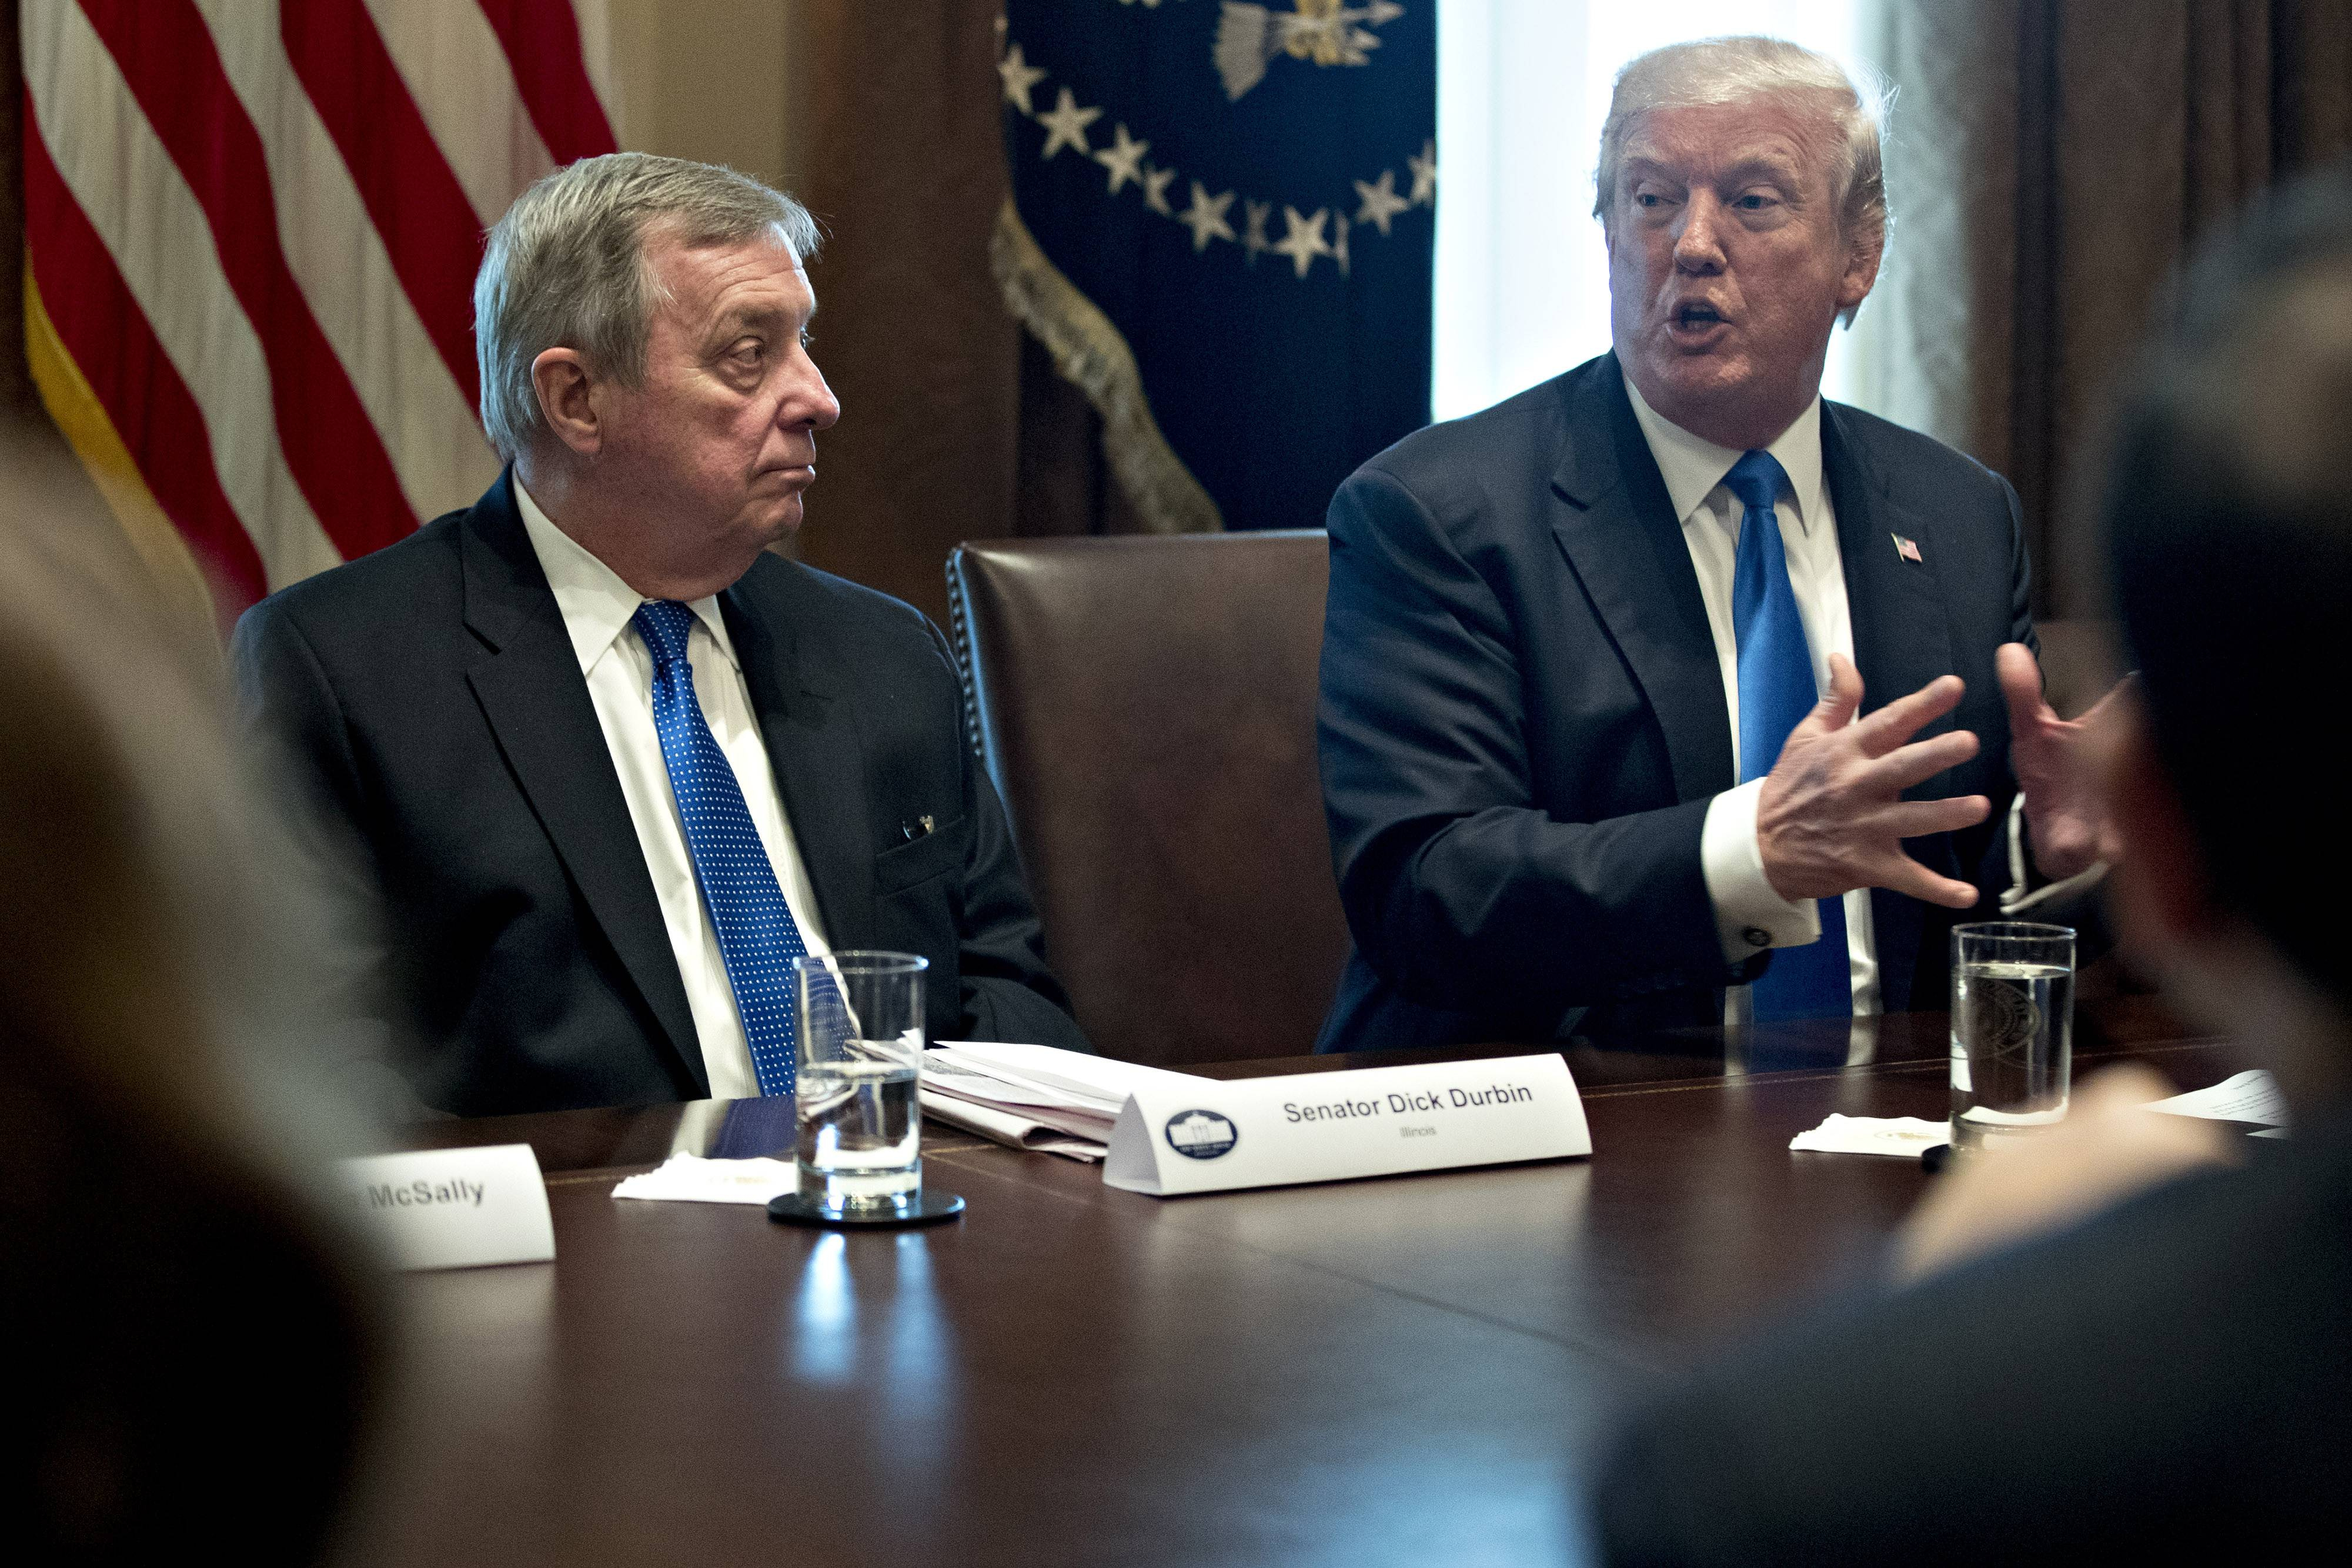 President Donald Trump speaks while Sen. Dick Durbin, D-Ill. (left) listens during a meeting with bipartisan members of Congress on immigration in the Cabinet Room of the White House in Washington, on Jan. 9, 2018.